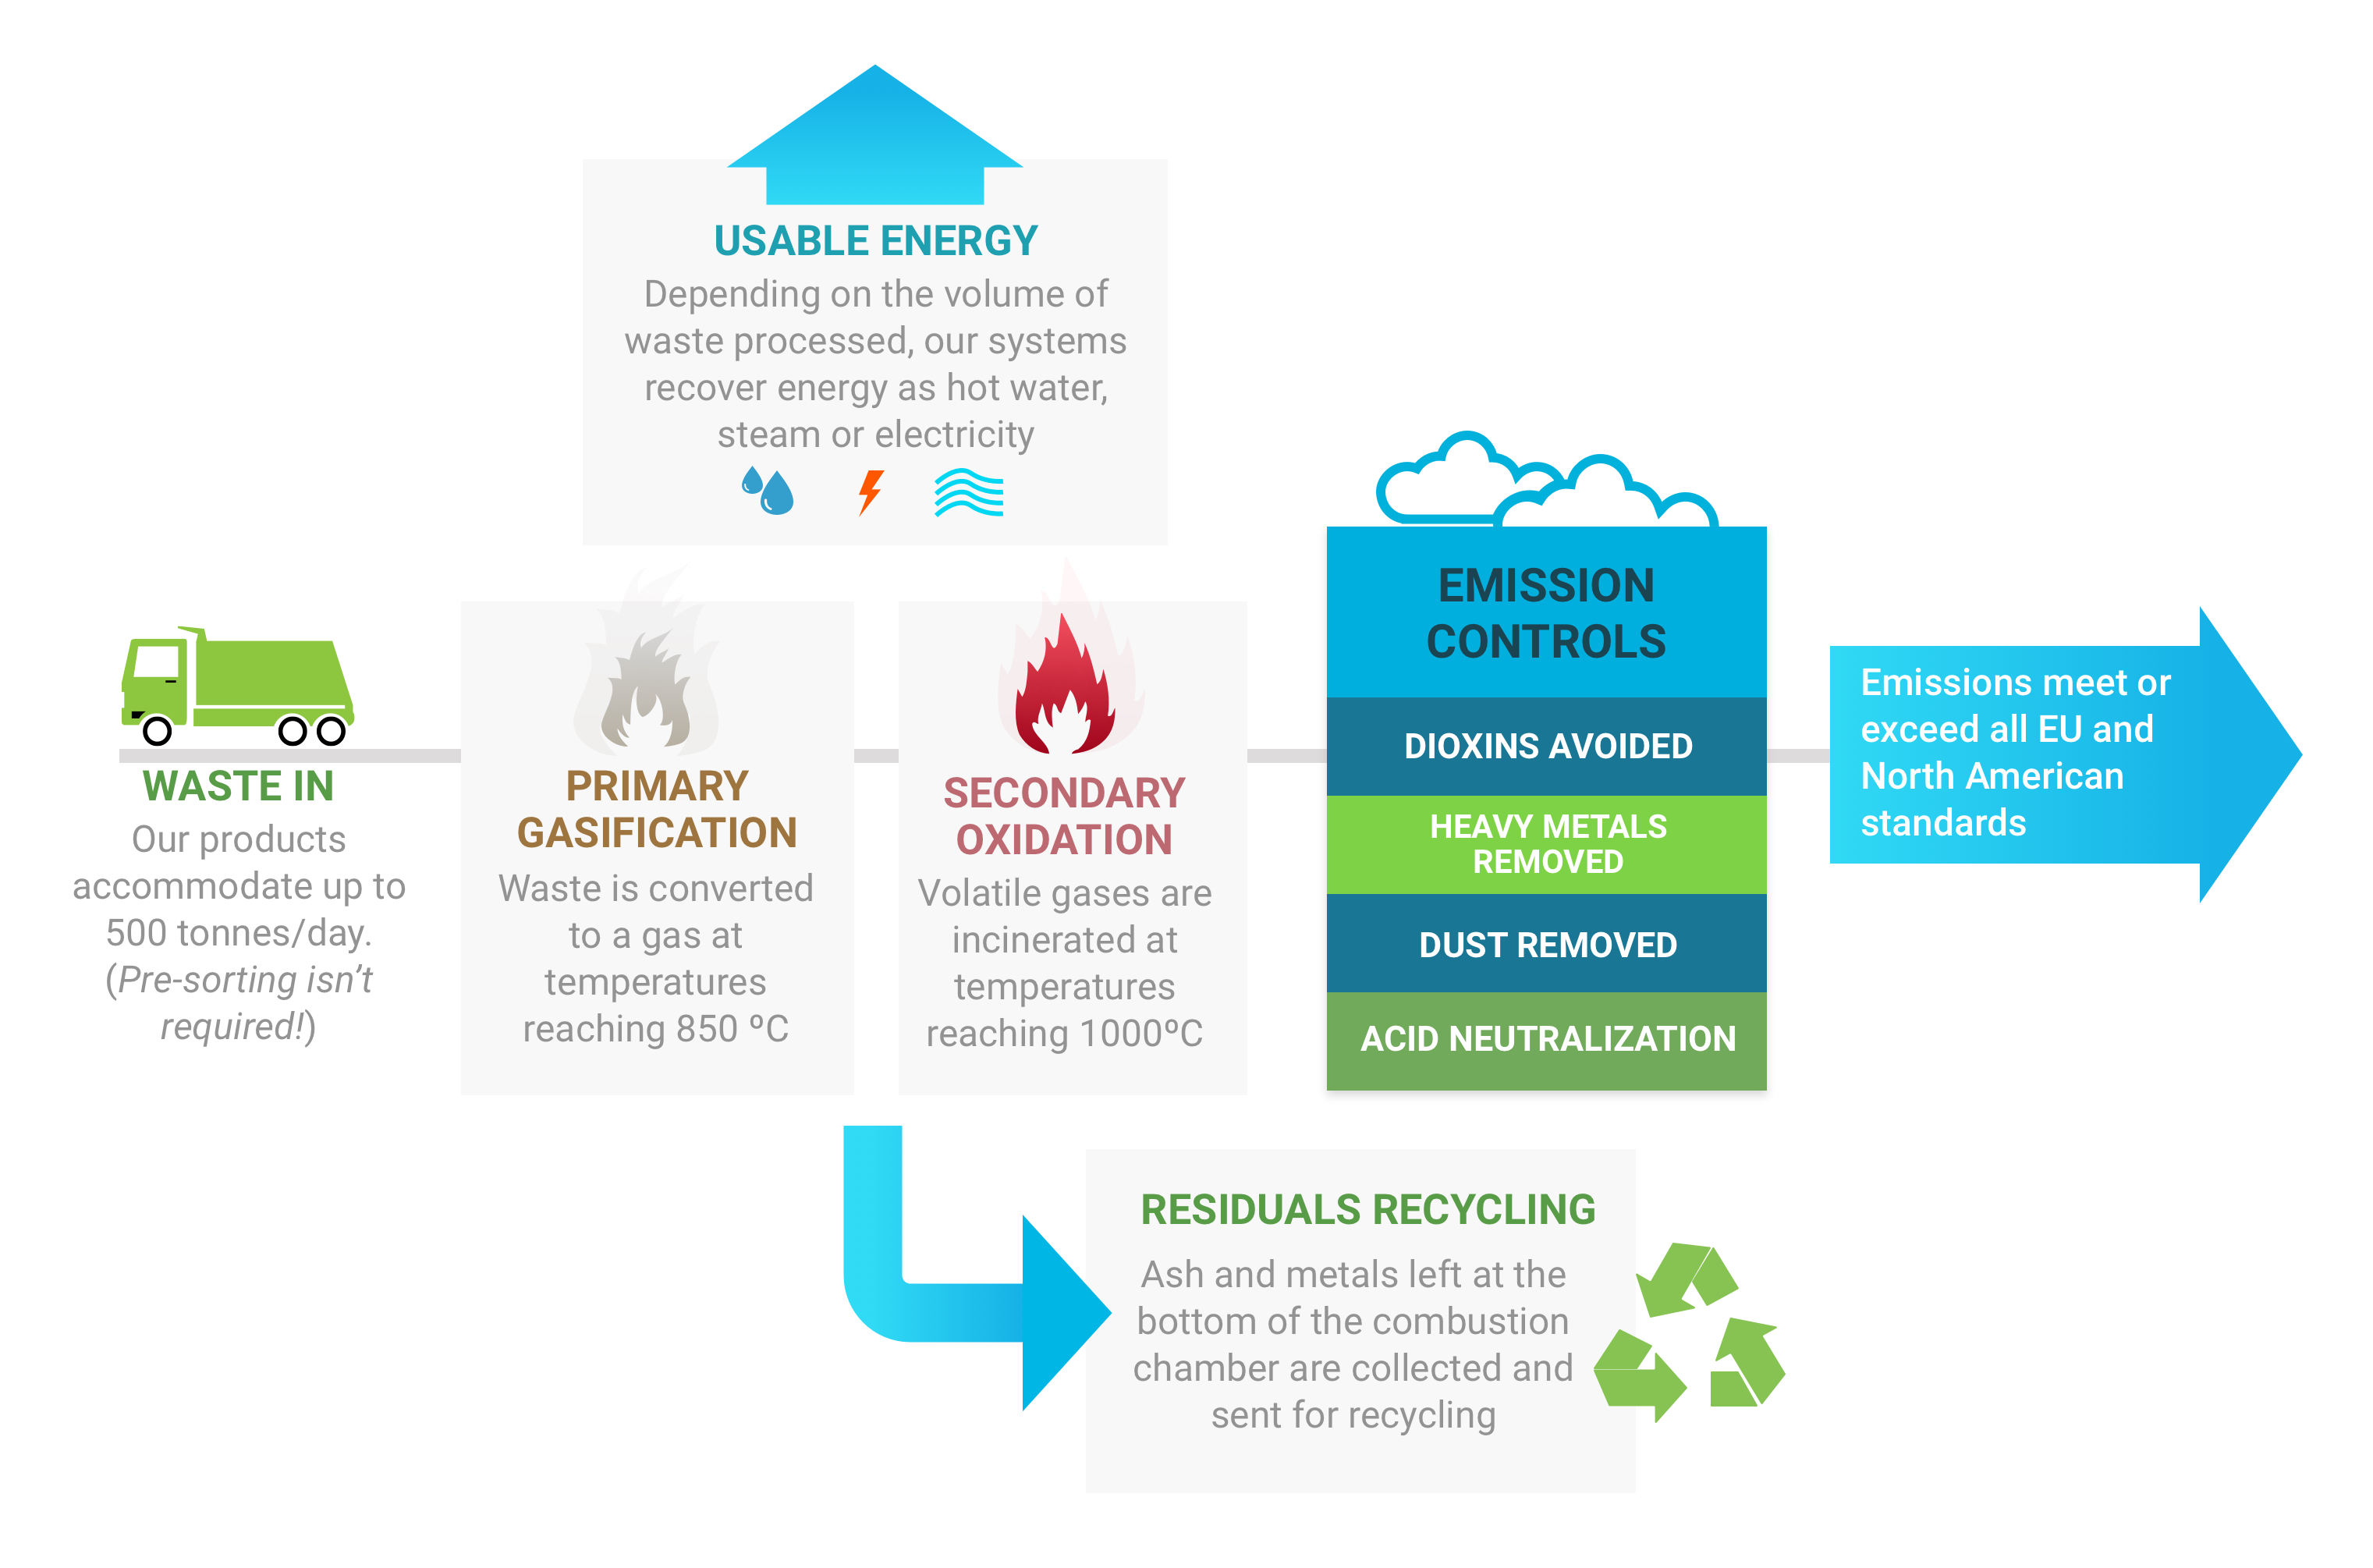 Canada's waste to energy leaders Eco Waste Solutions